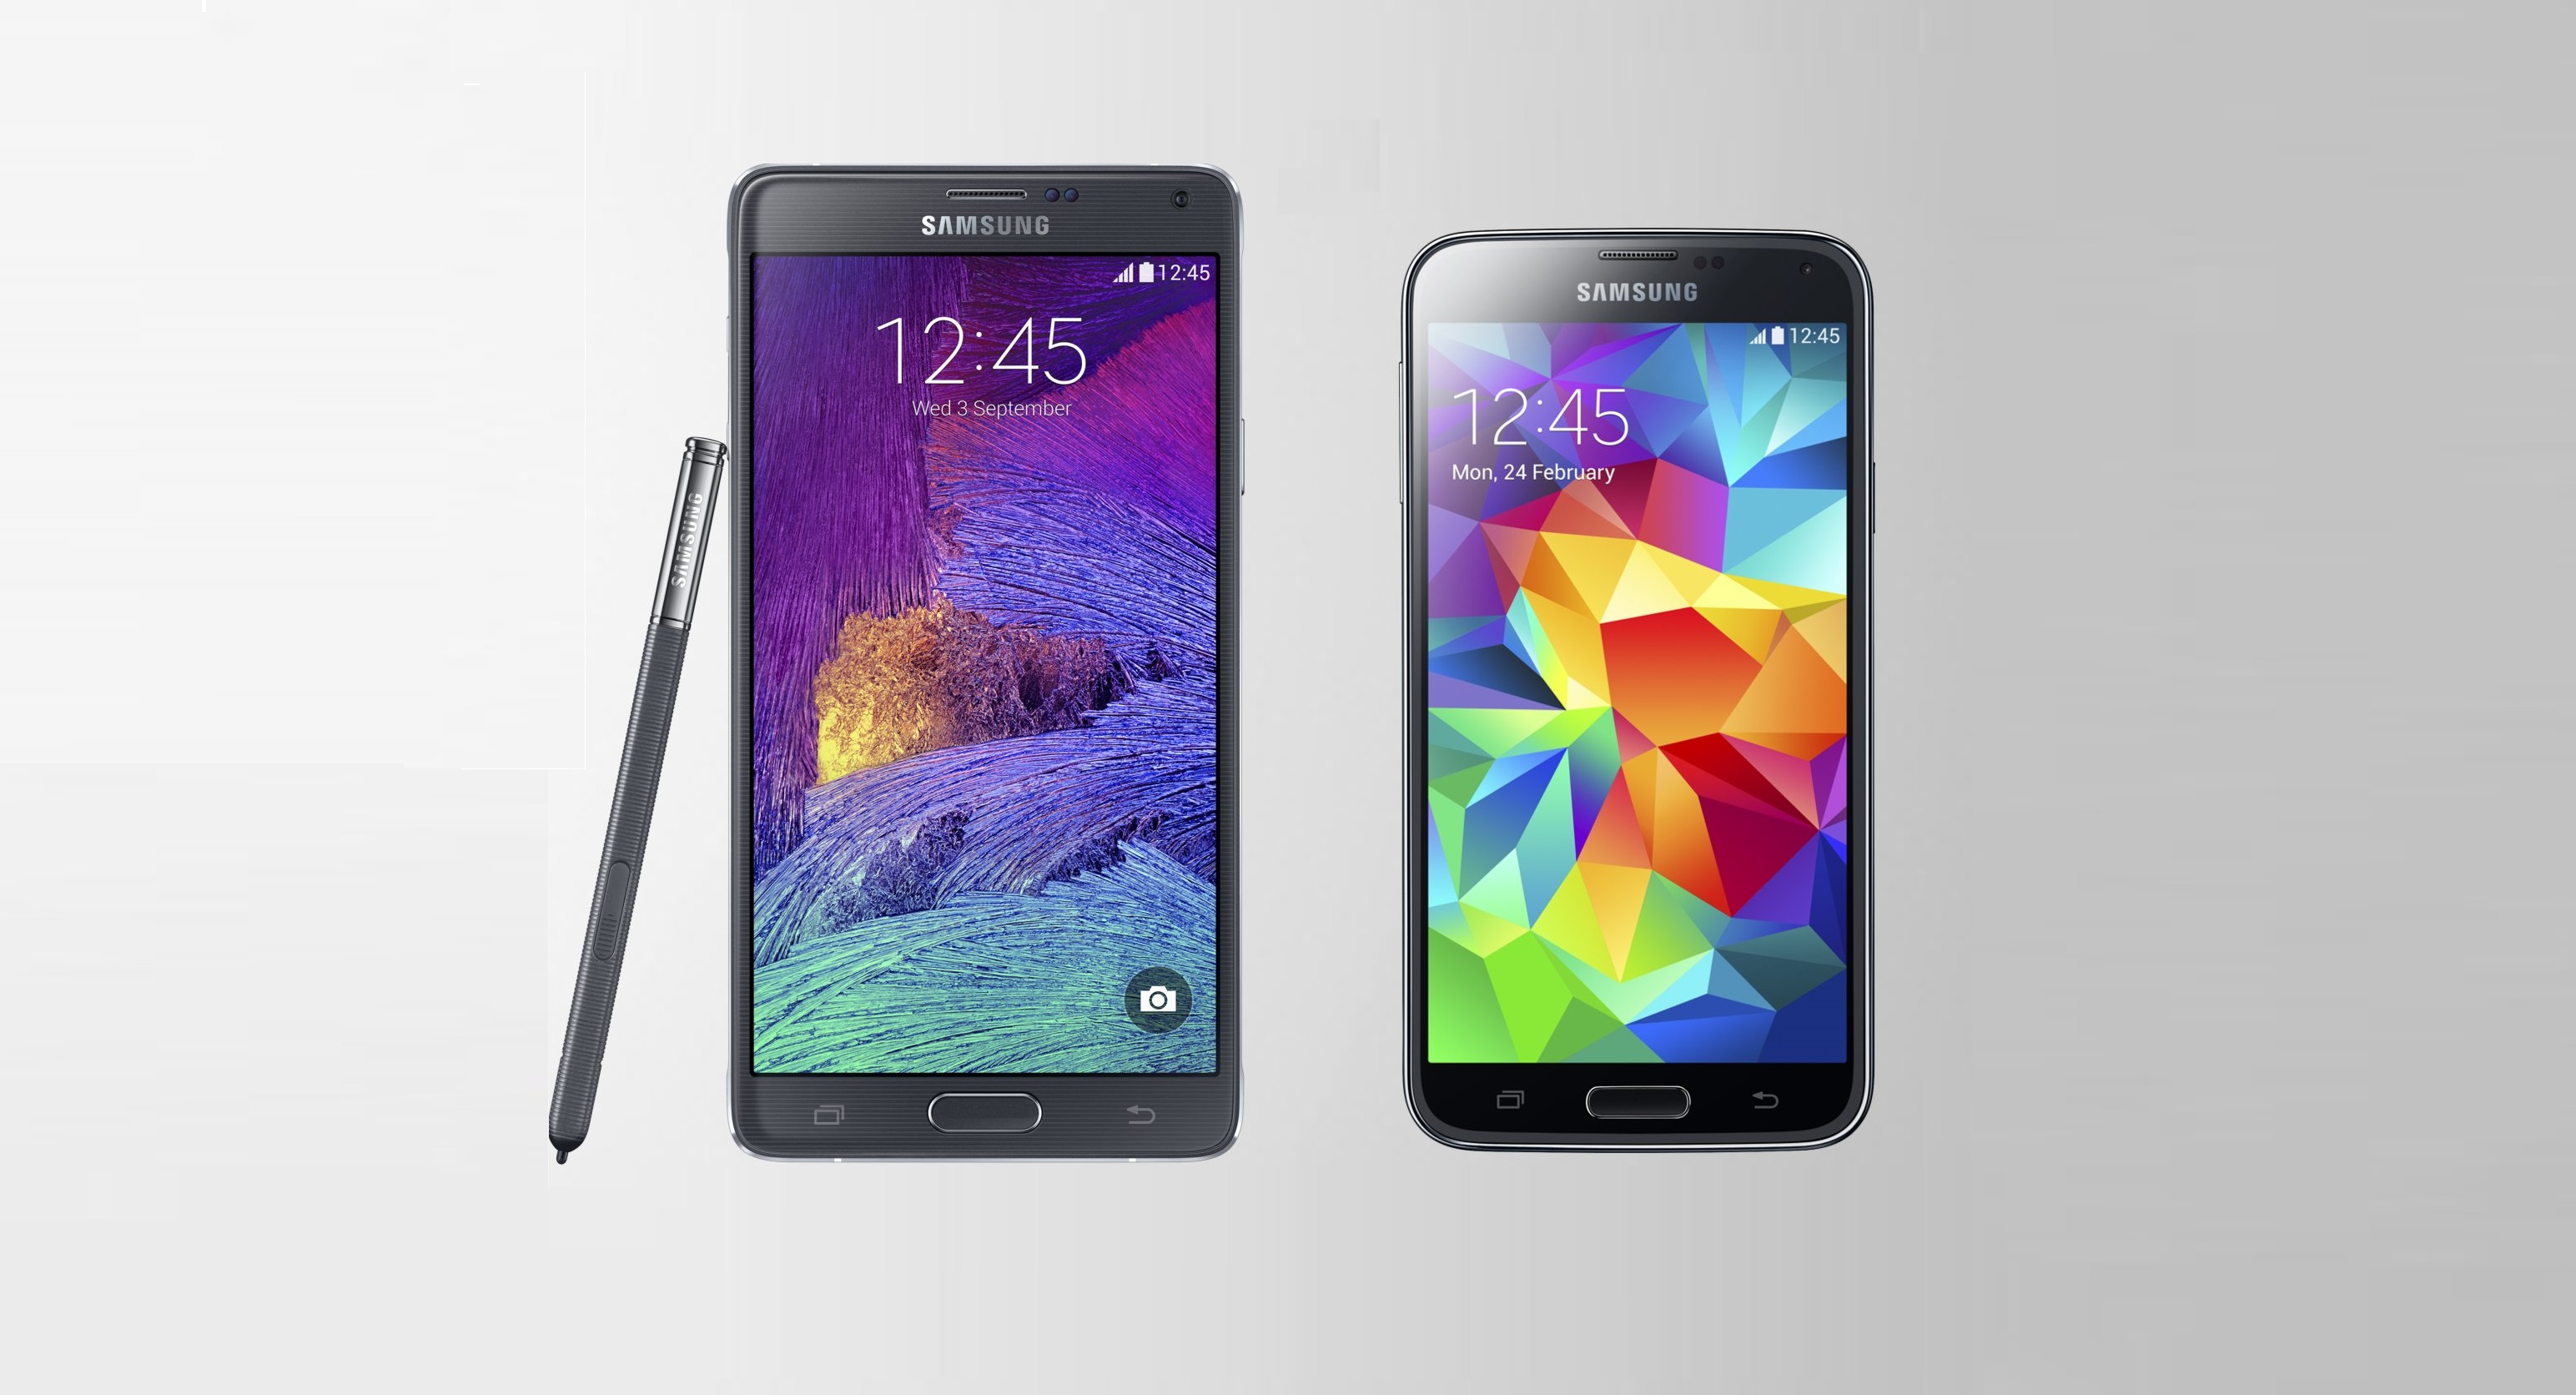 AH-Samsung-Galaxy-Note-4-vs-Samsung-Galaxy-S5.jpg